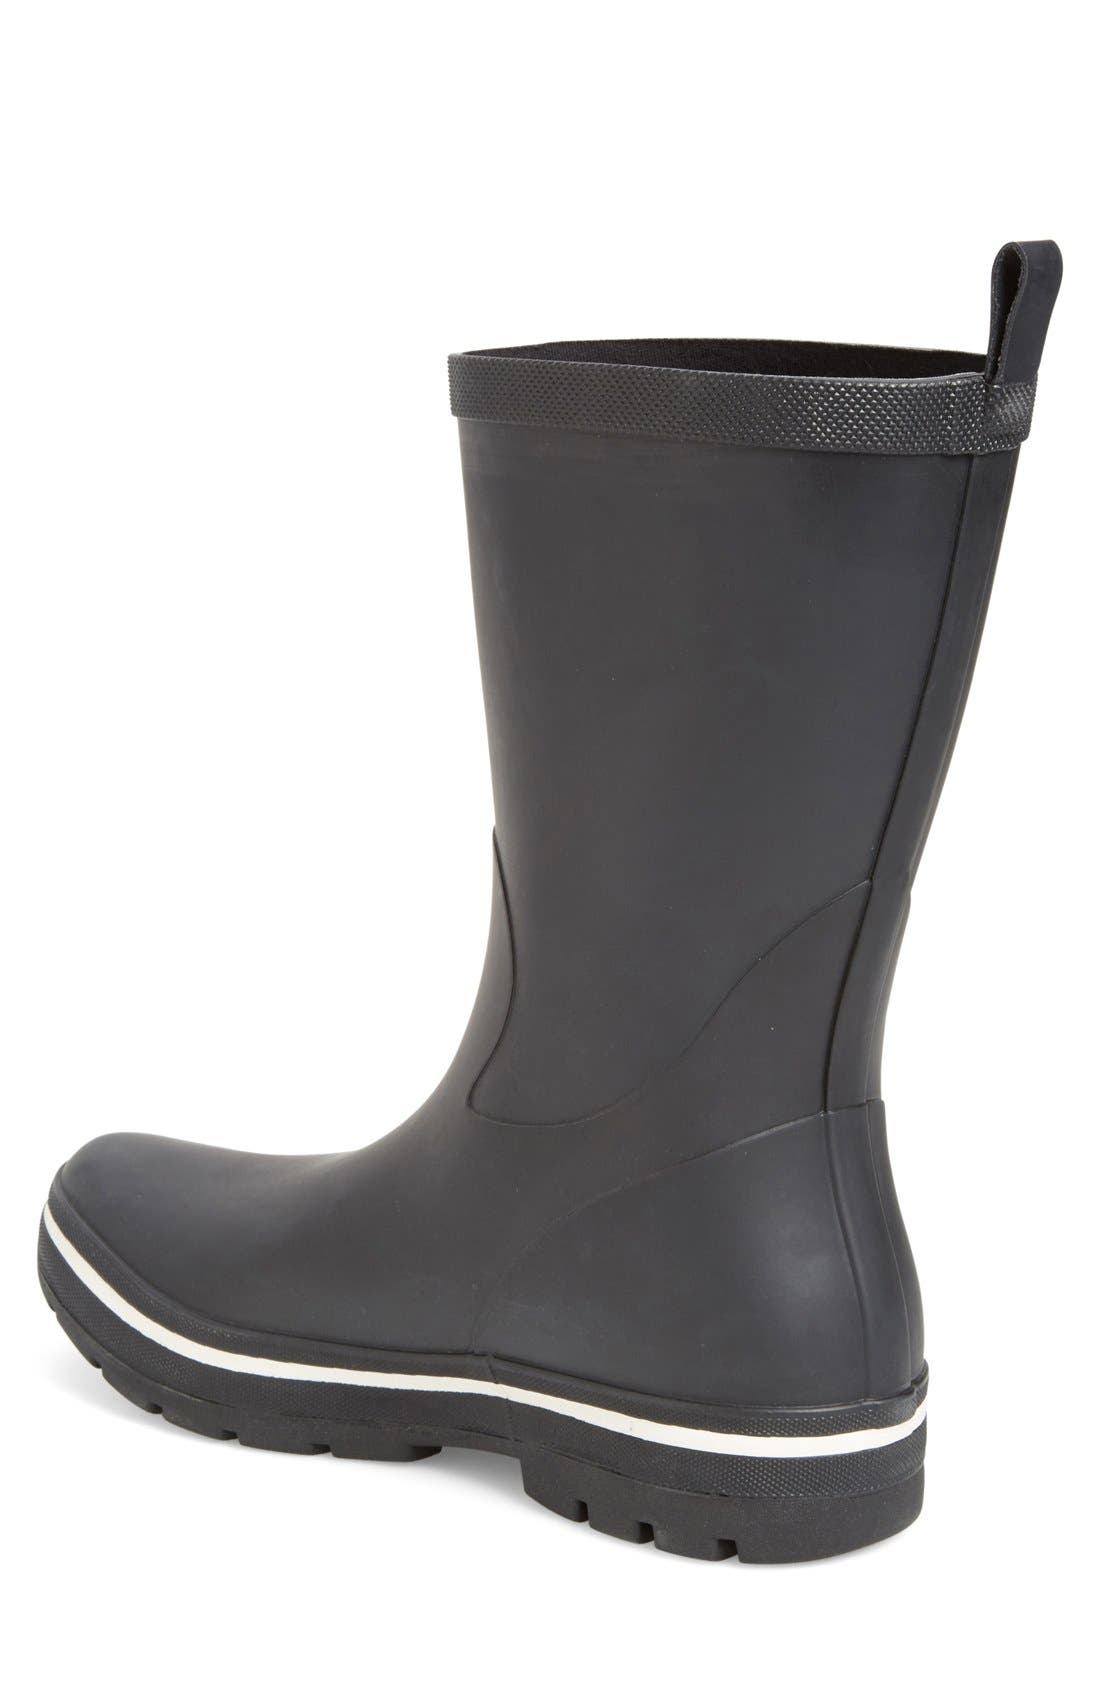 'Midsund 2' Rain Boot,                             Alternate thumbnail 3, color,                             002